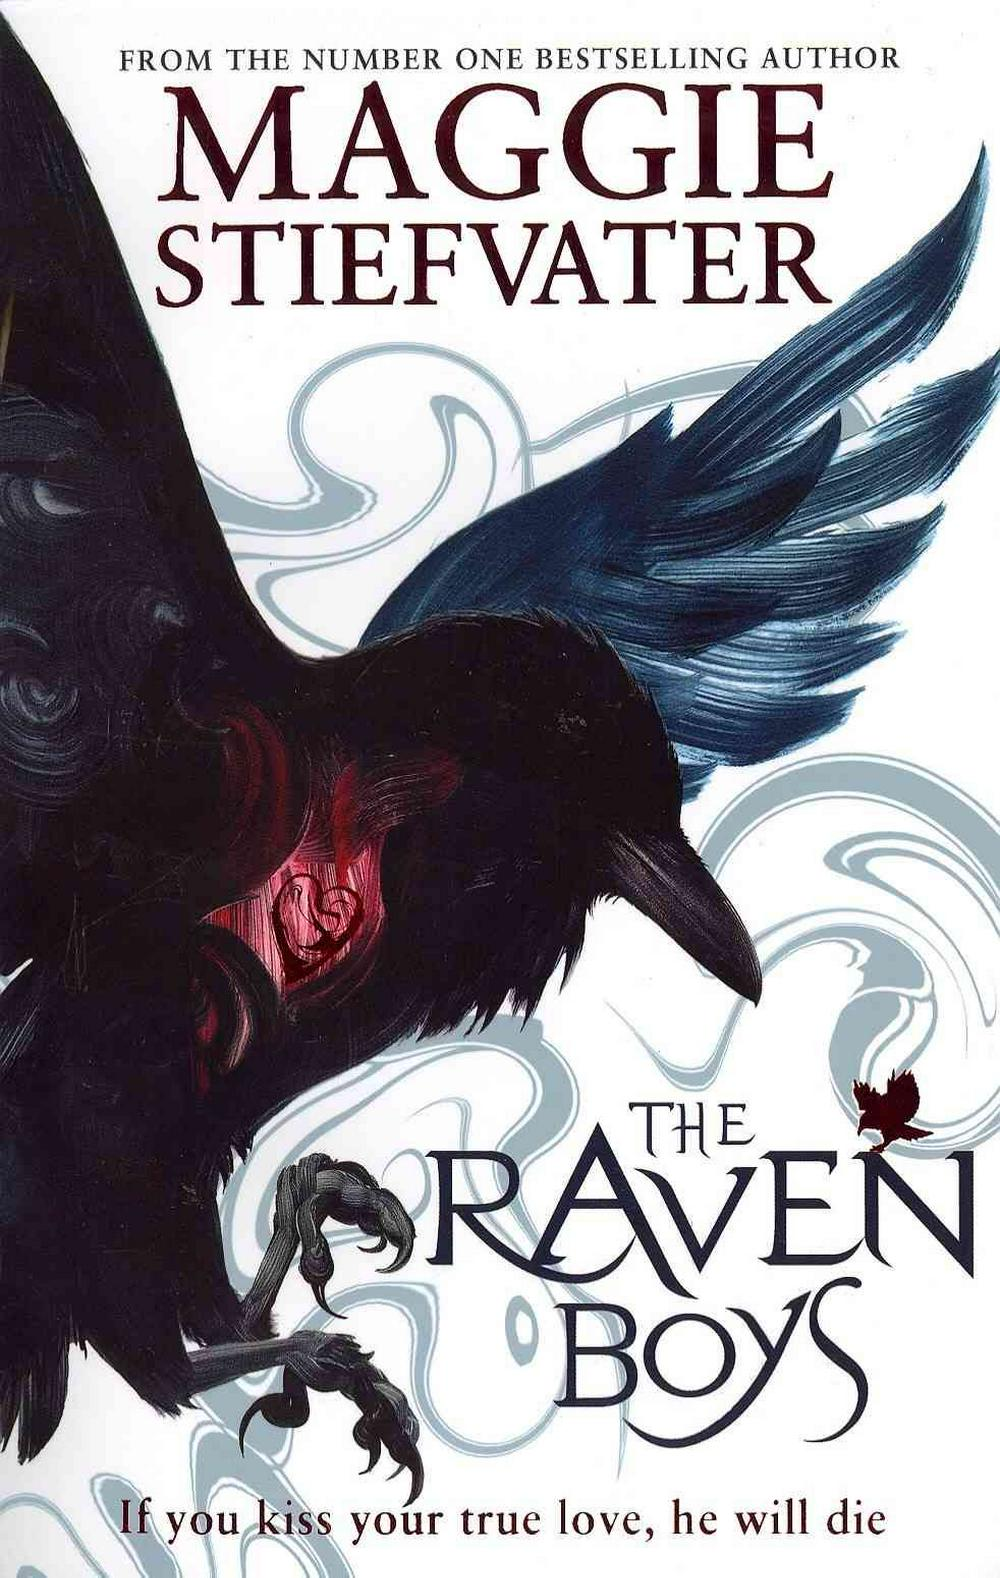 The Raven Boys by Maggie Stiefvater, ISBN: 9781407134611